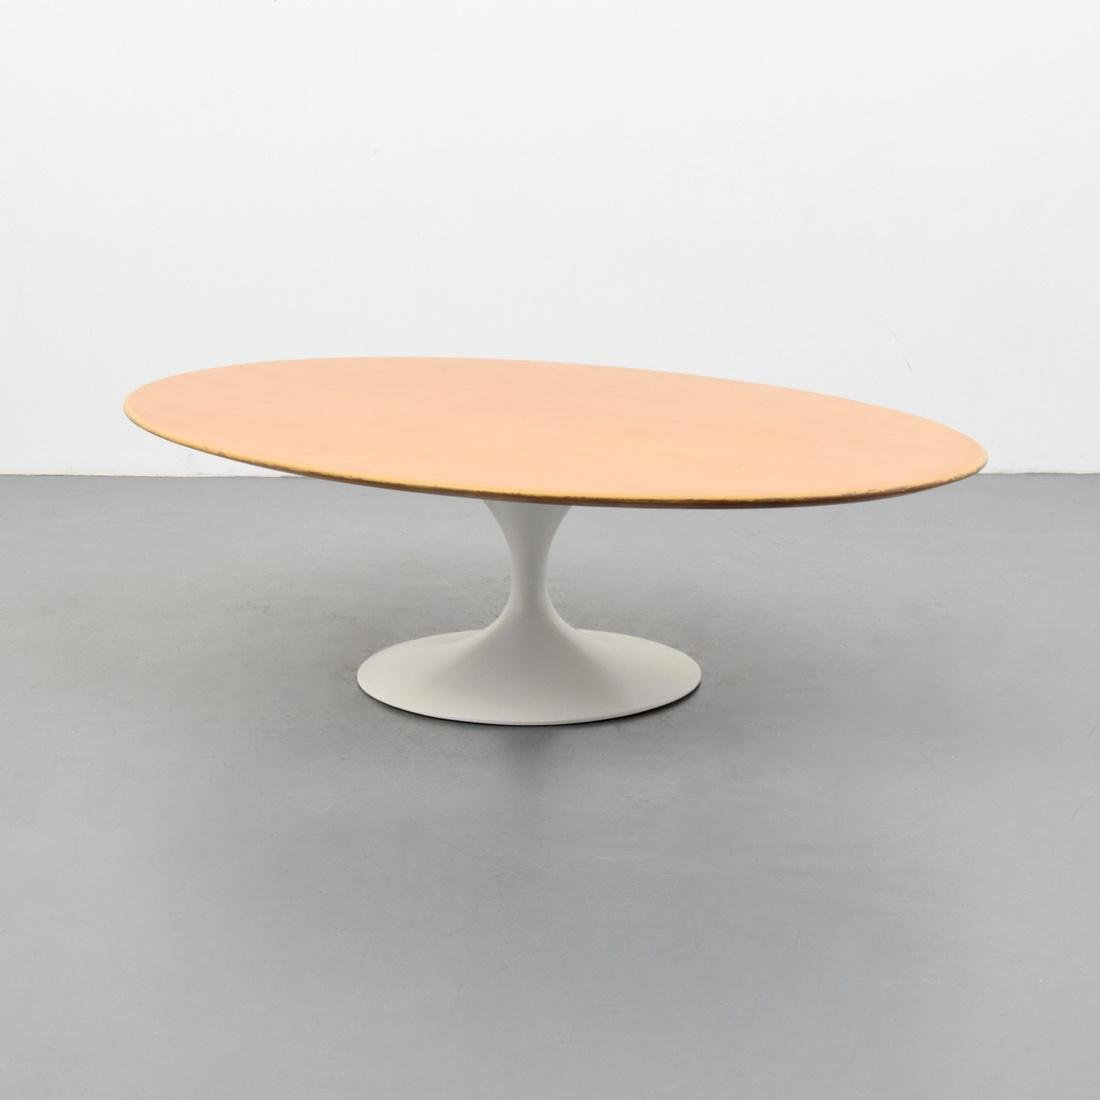 Eero Saarinen Coffee Table